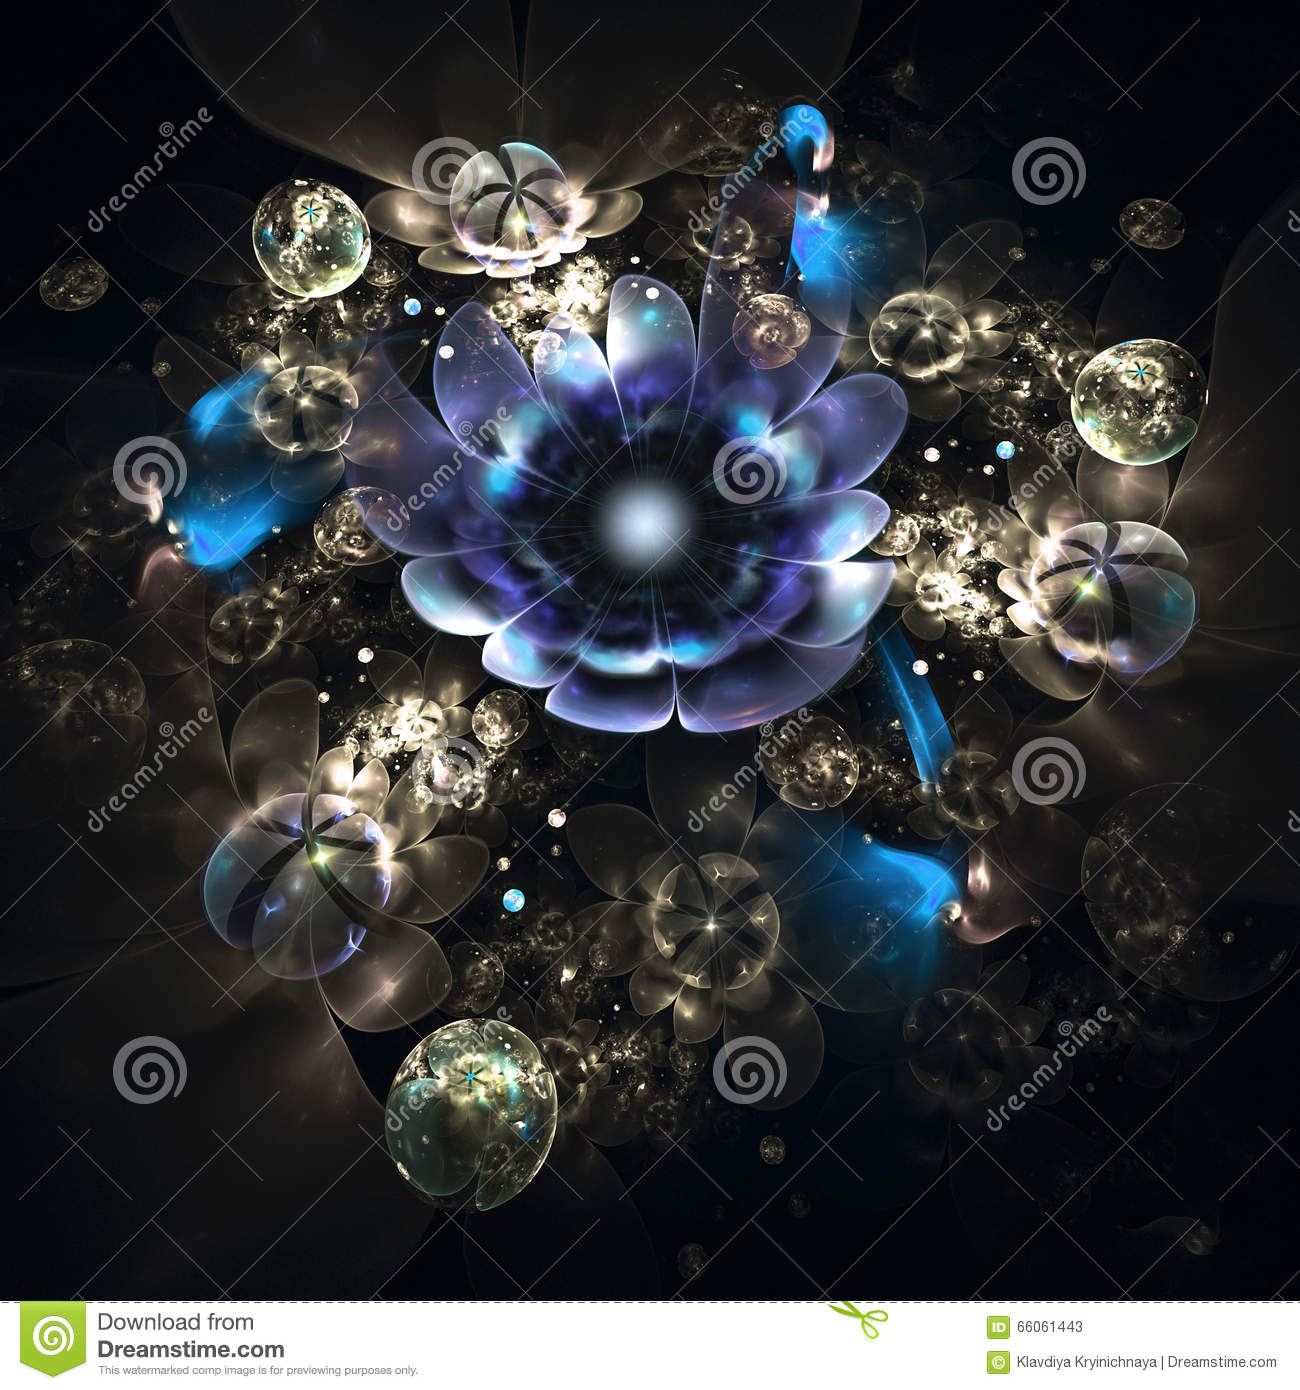 Fractal Black Flower Free Stock Photo: Abstract 3d Flowers On Black Background. Stock Image